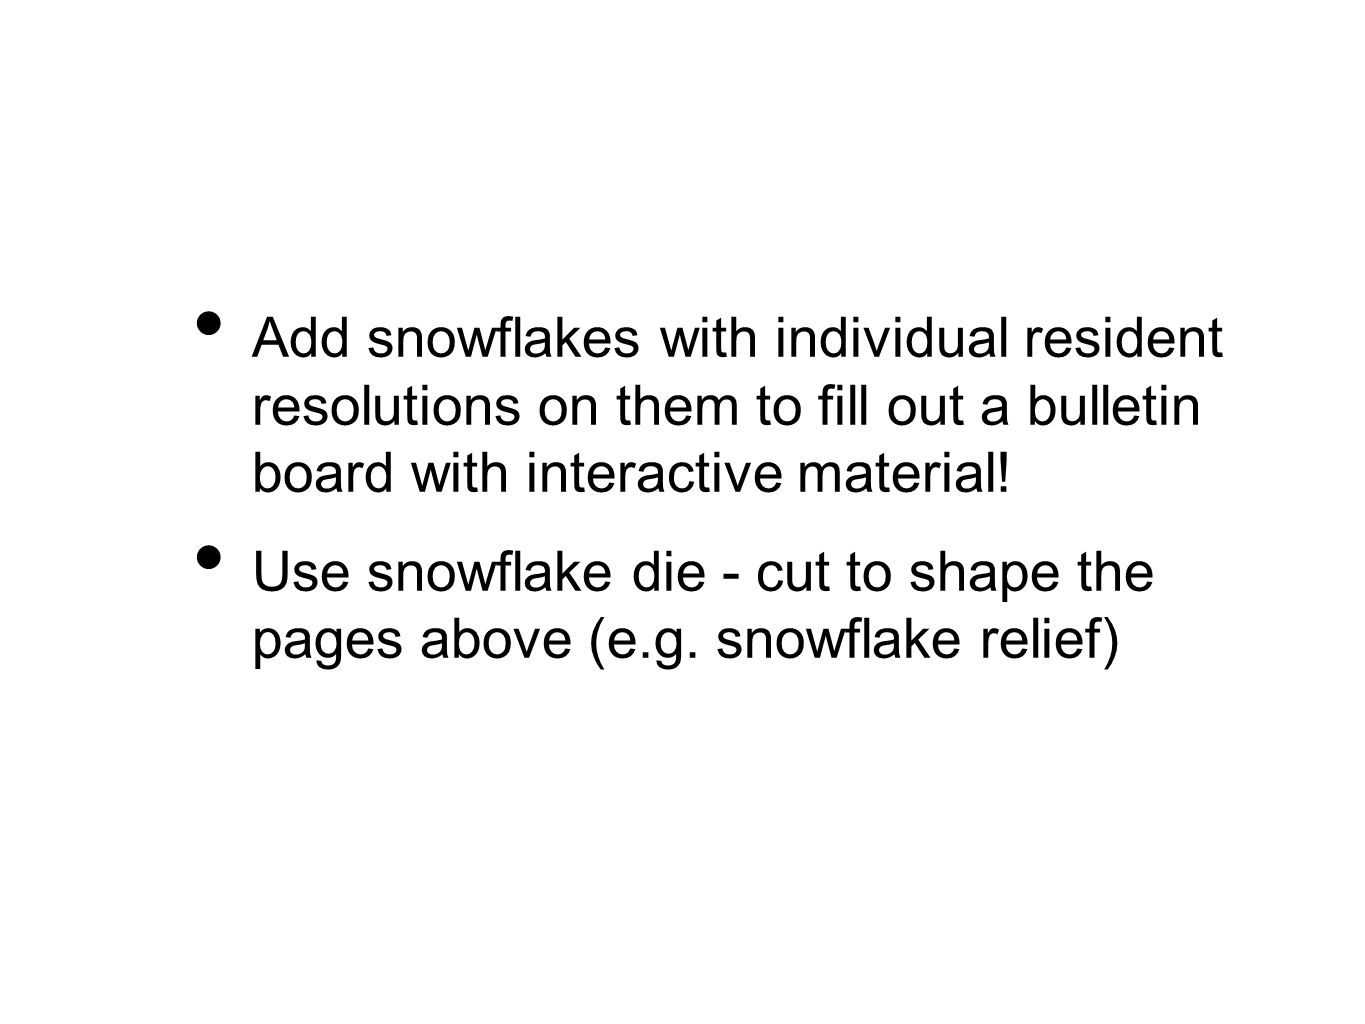 Add snowflakes with individual resident resolutions on them to fill out a bulletin board with interactive material! Use snowflake die - cut to shape t